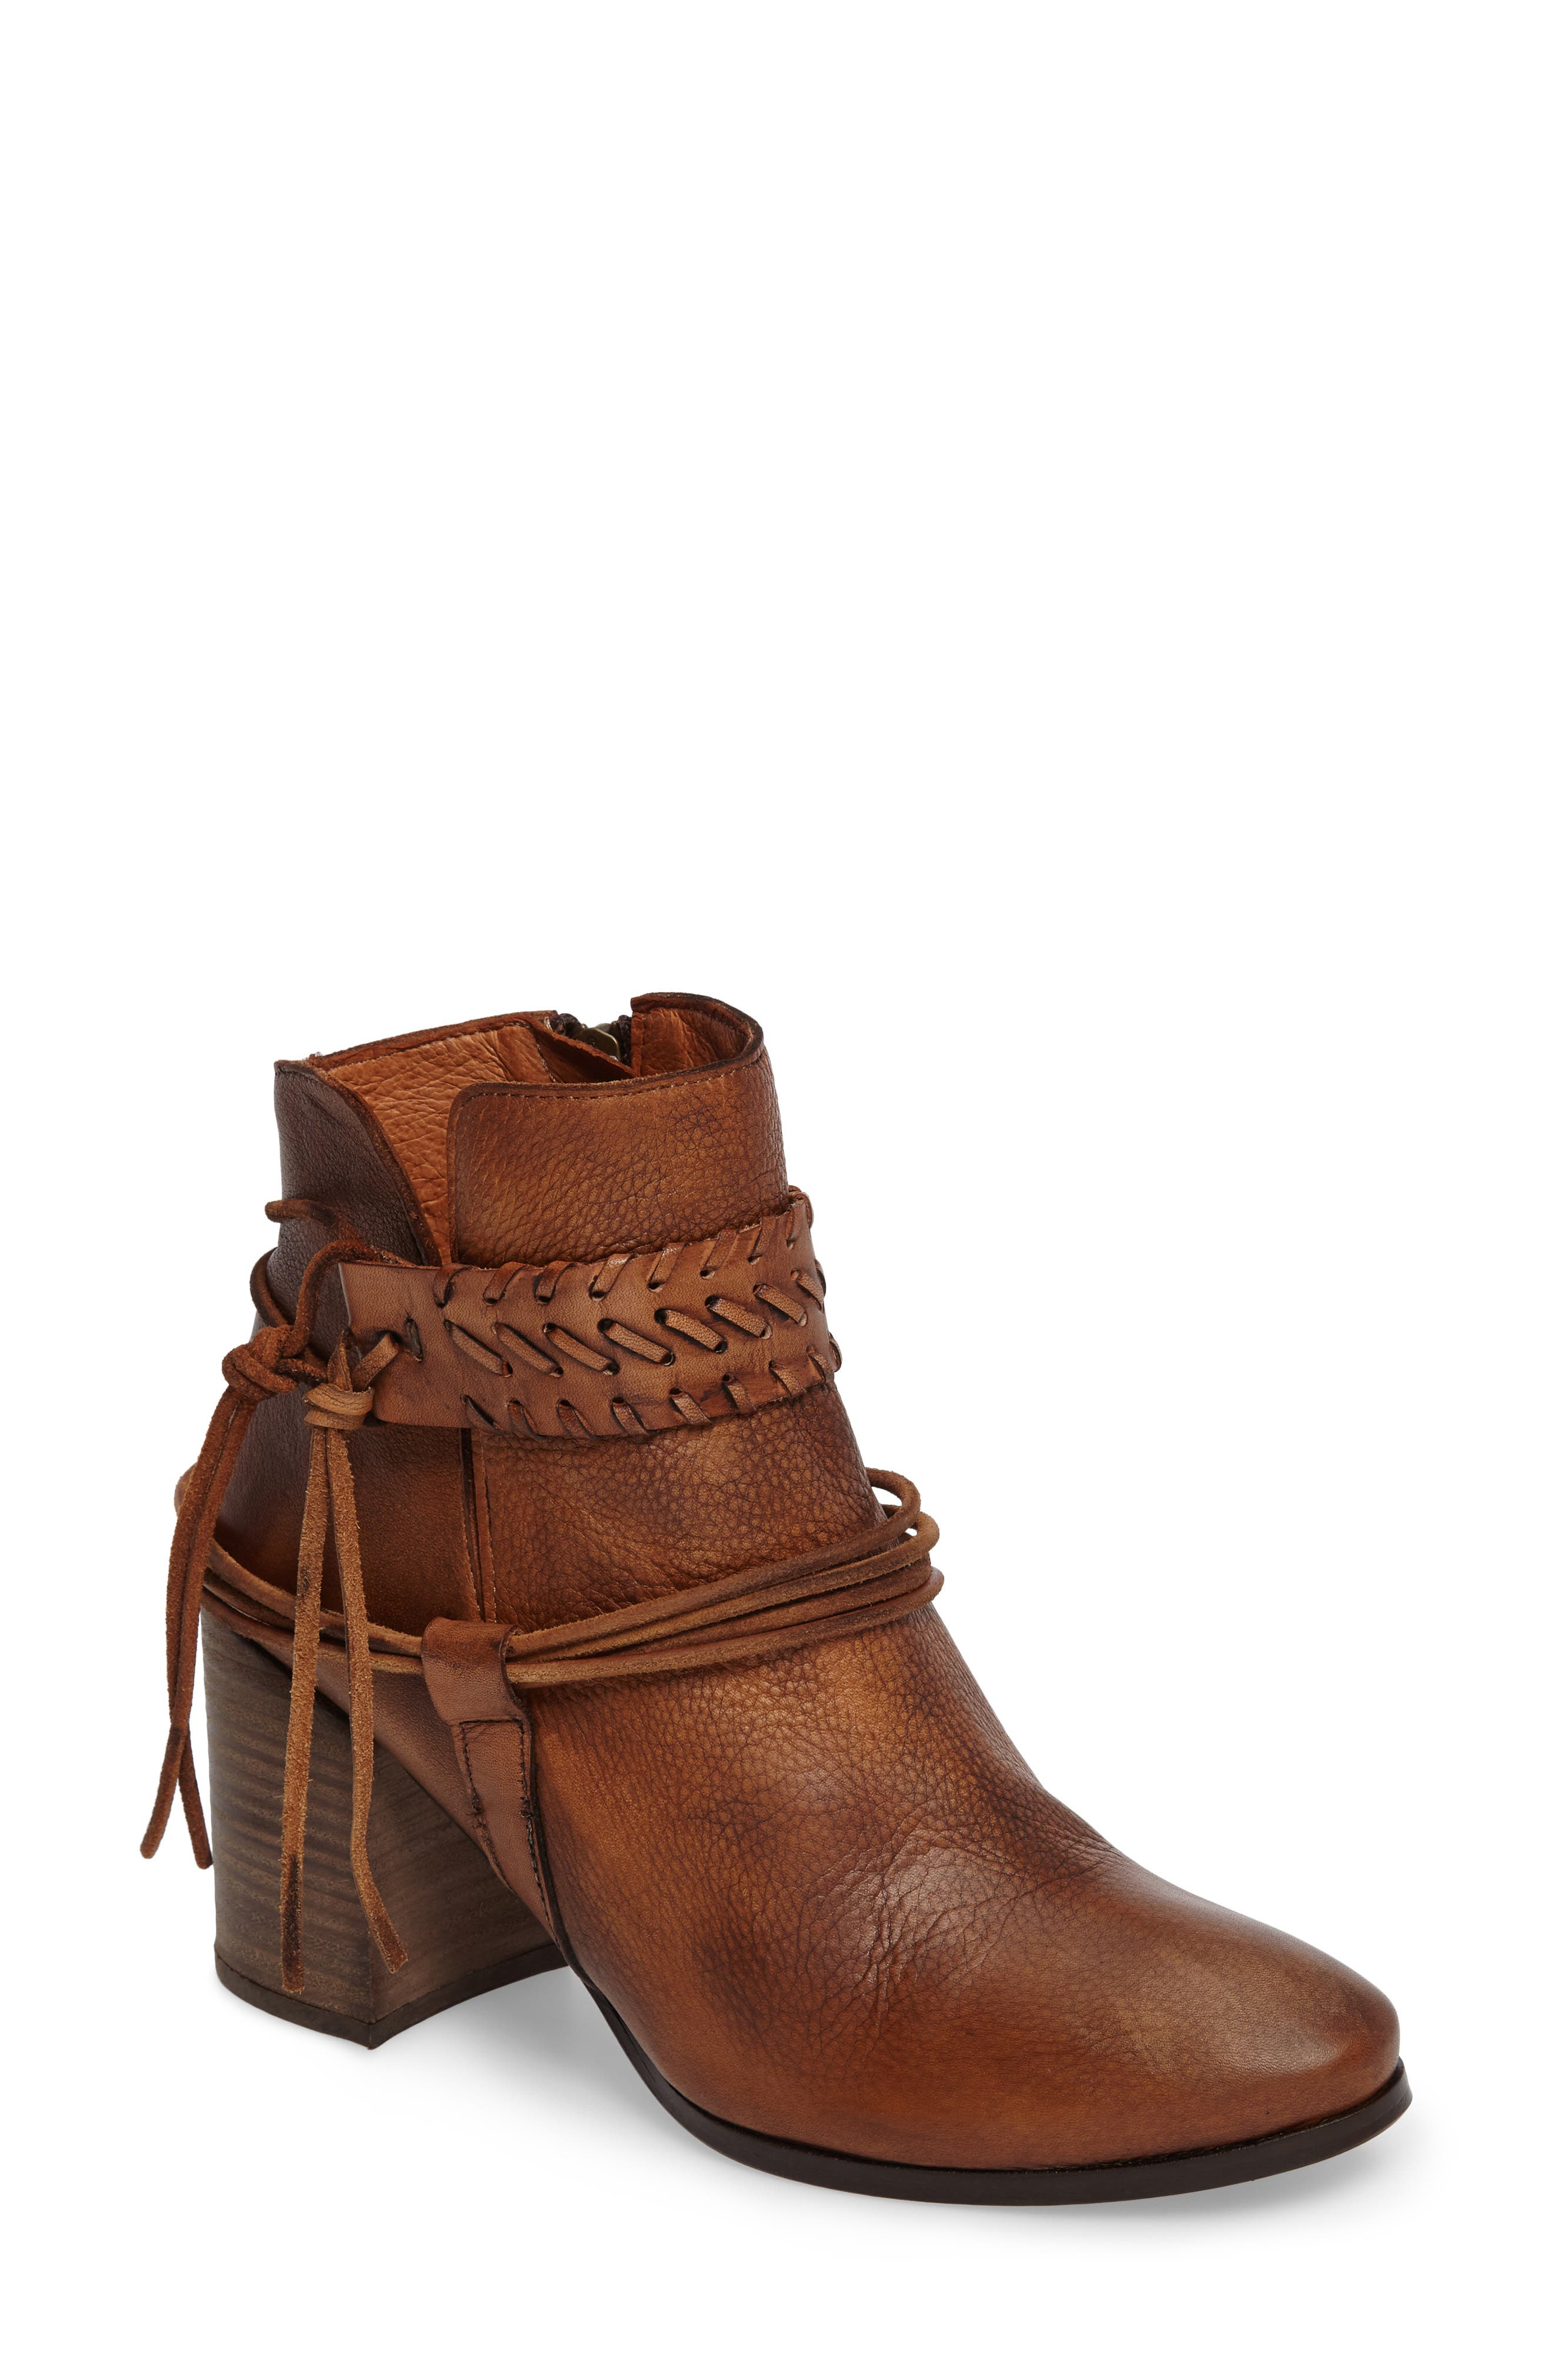 BASKE california Cabrillo Lace-Around Bootie (Women)